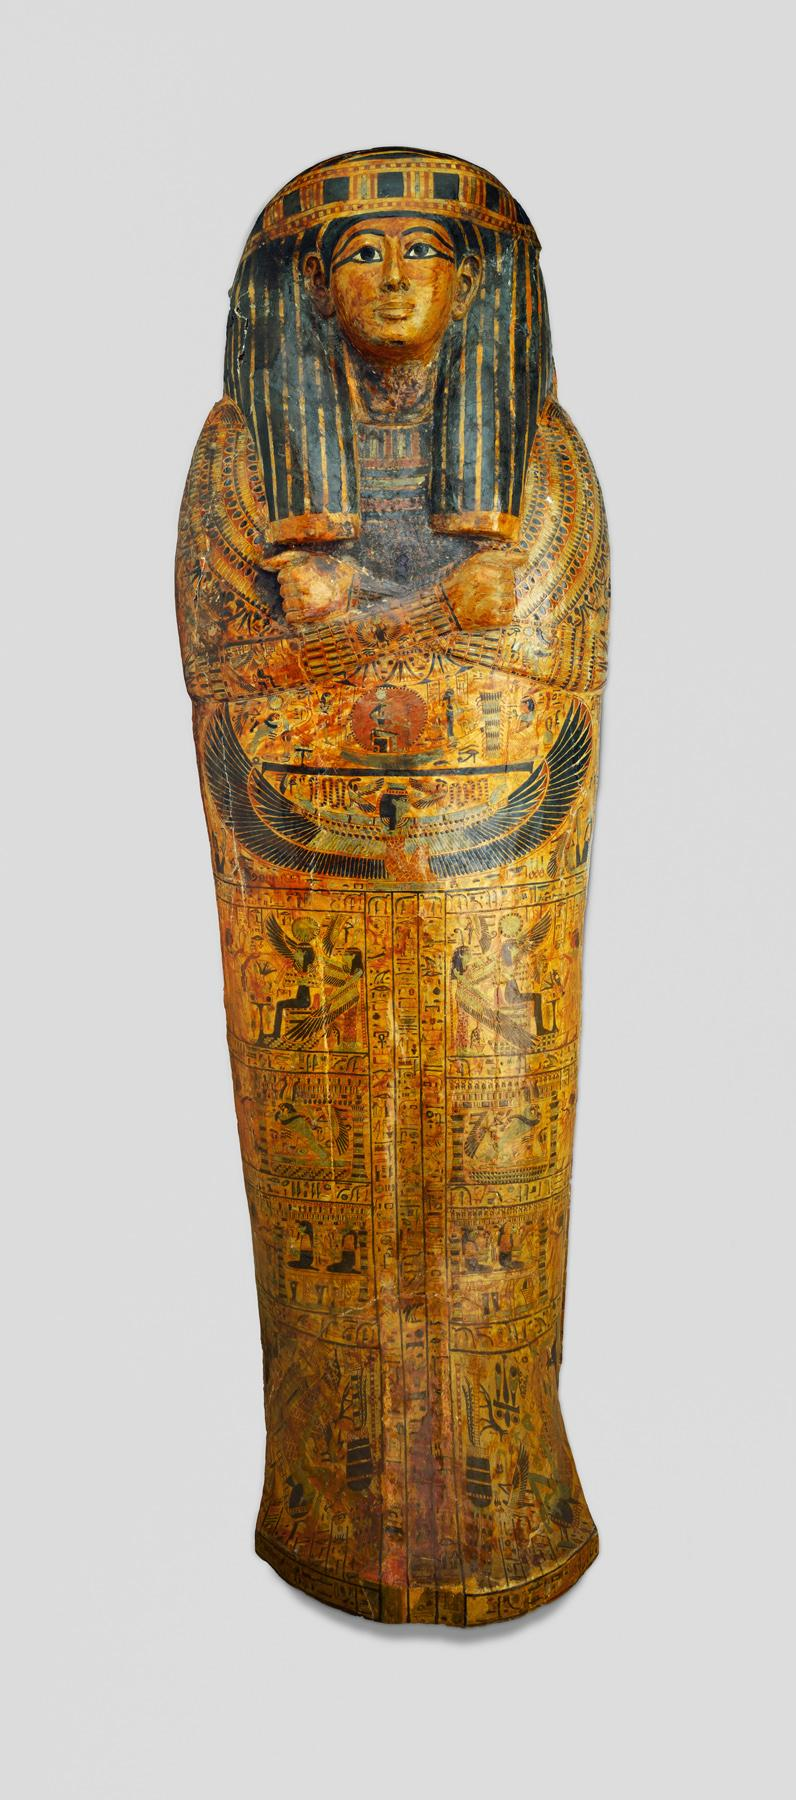 Large Outer Sarcophagus of the Royal Prince, Count of Thebes, Pa-seba-khai-en-ipet